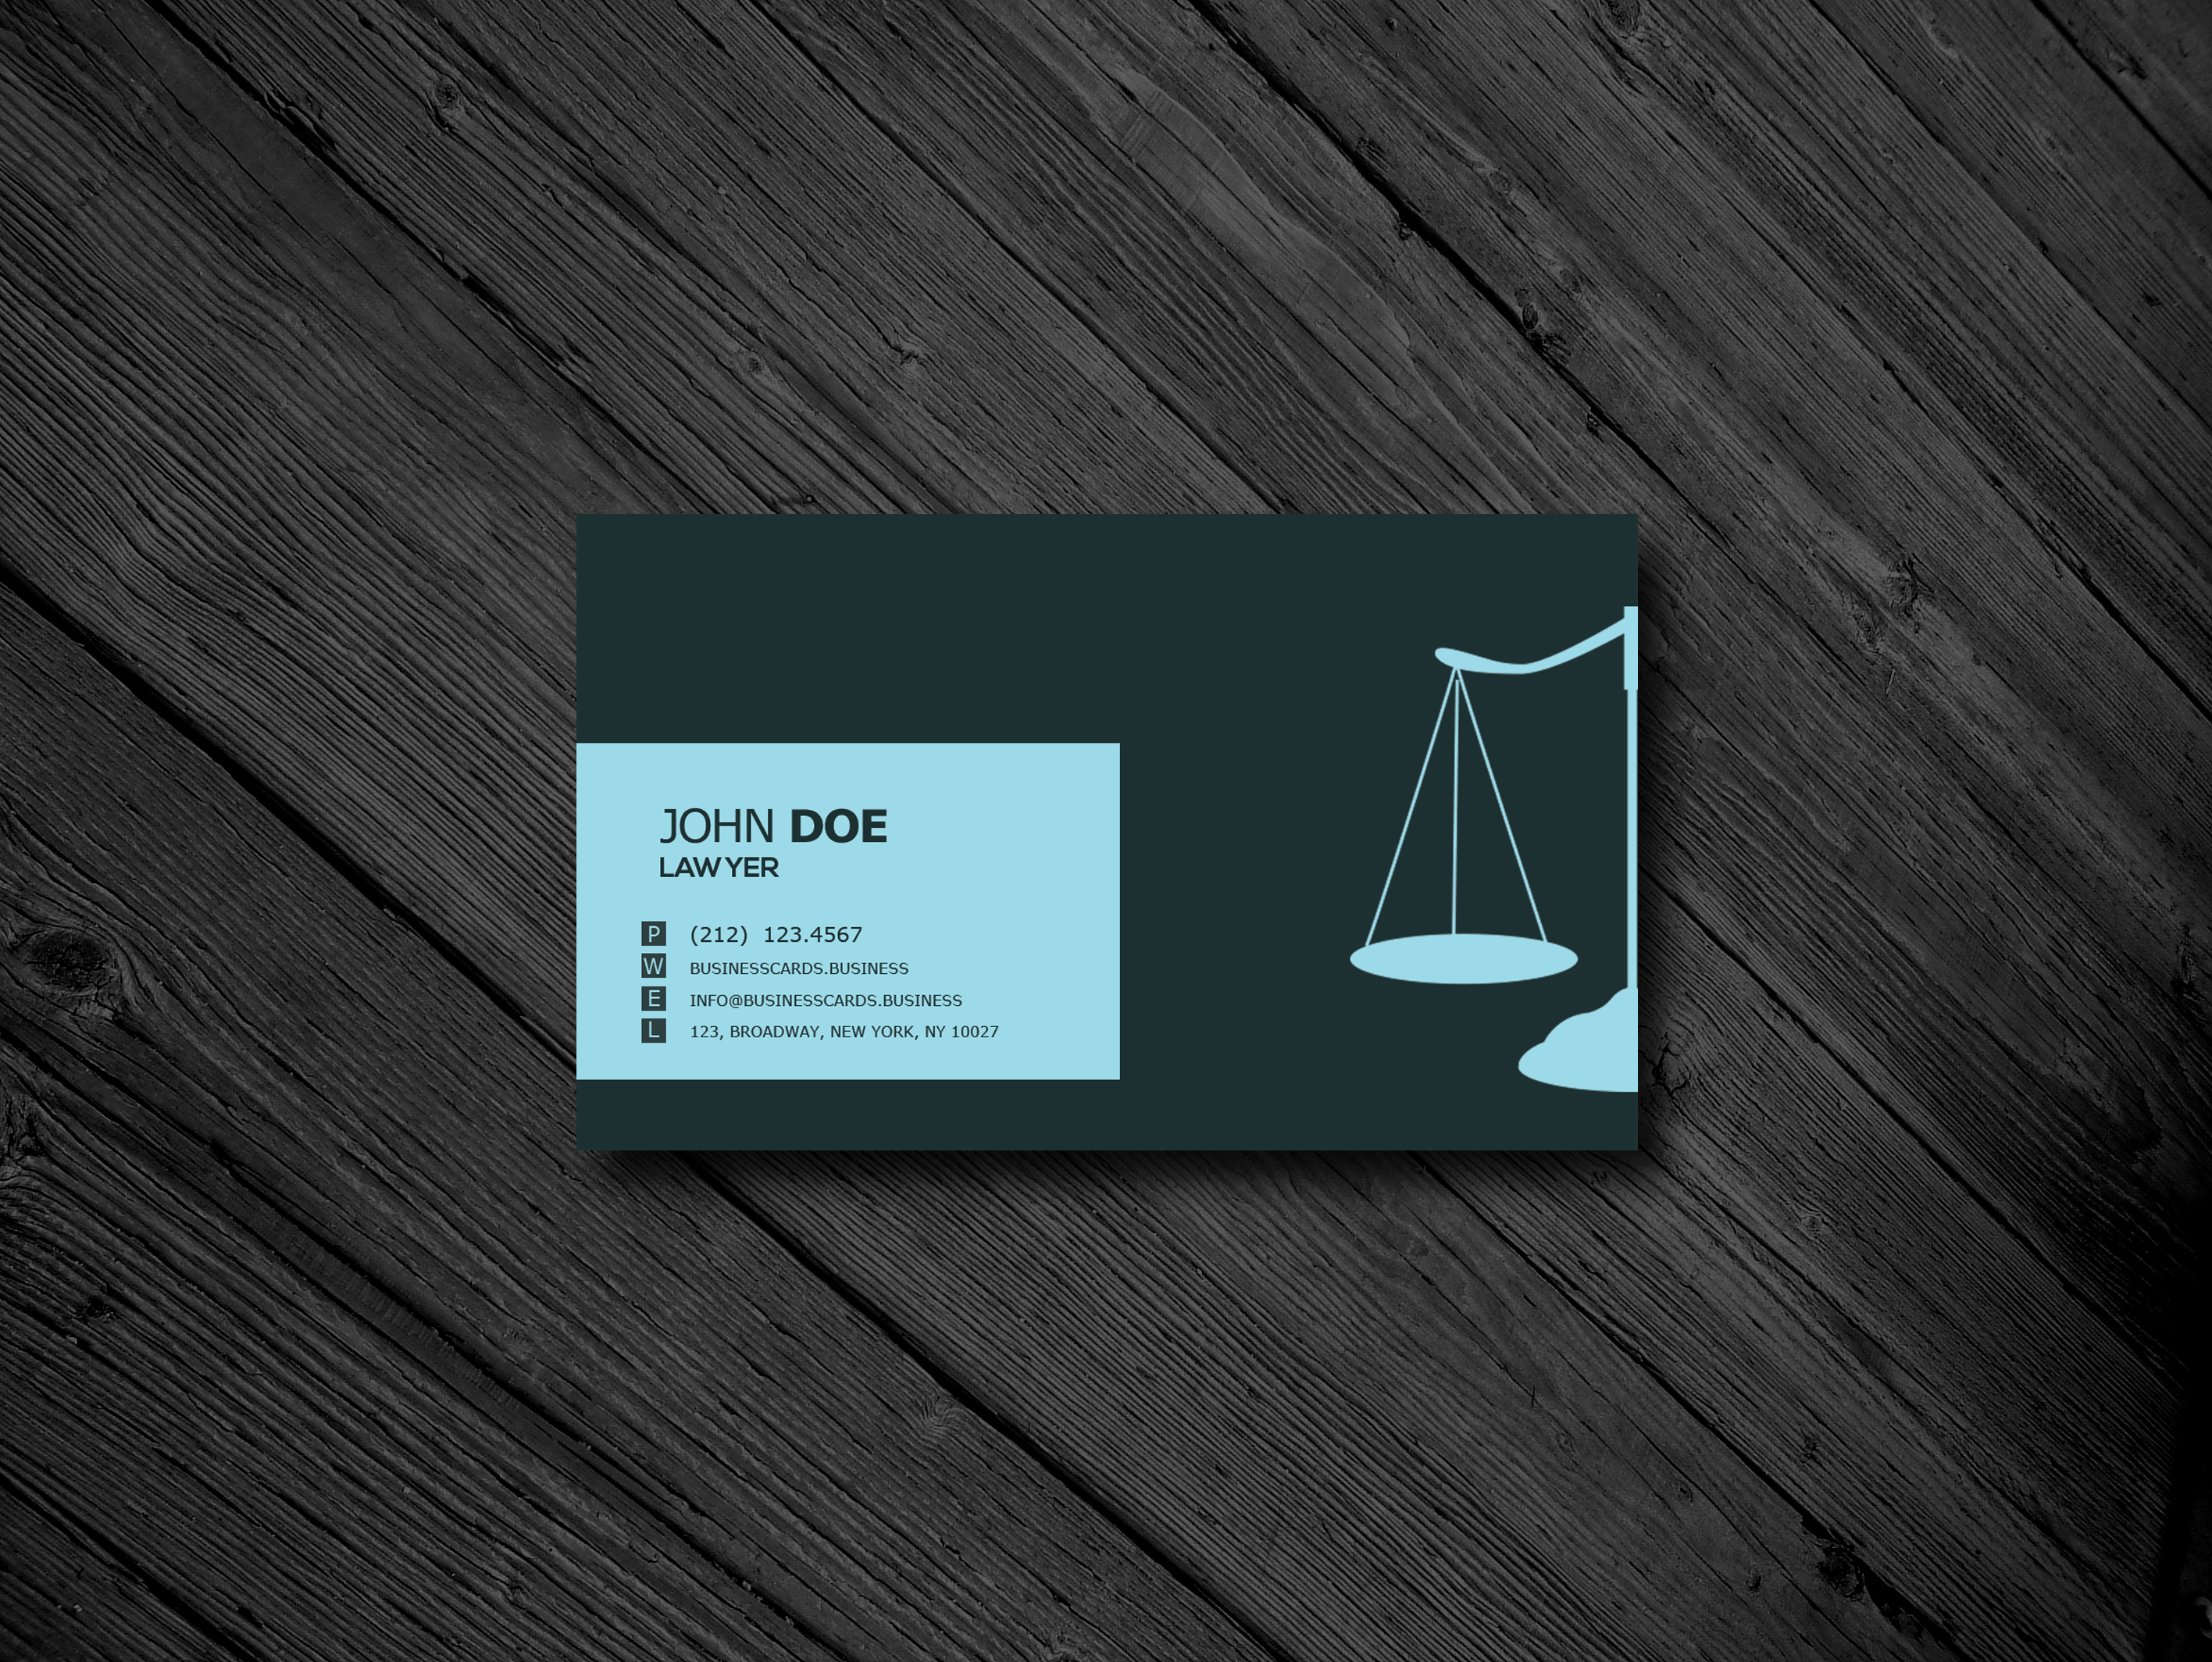 Free business card templates business cards templates free lawyer business card psd template fbccfo